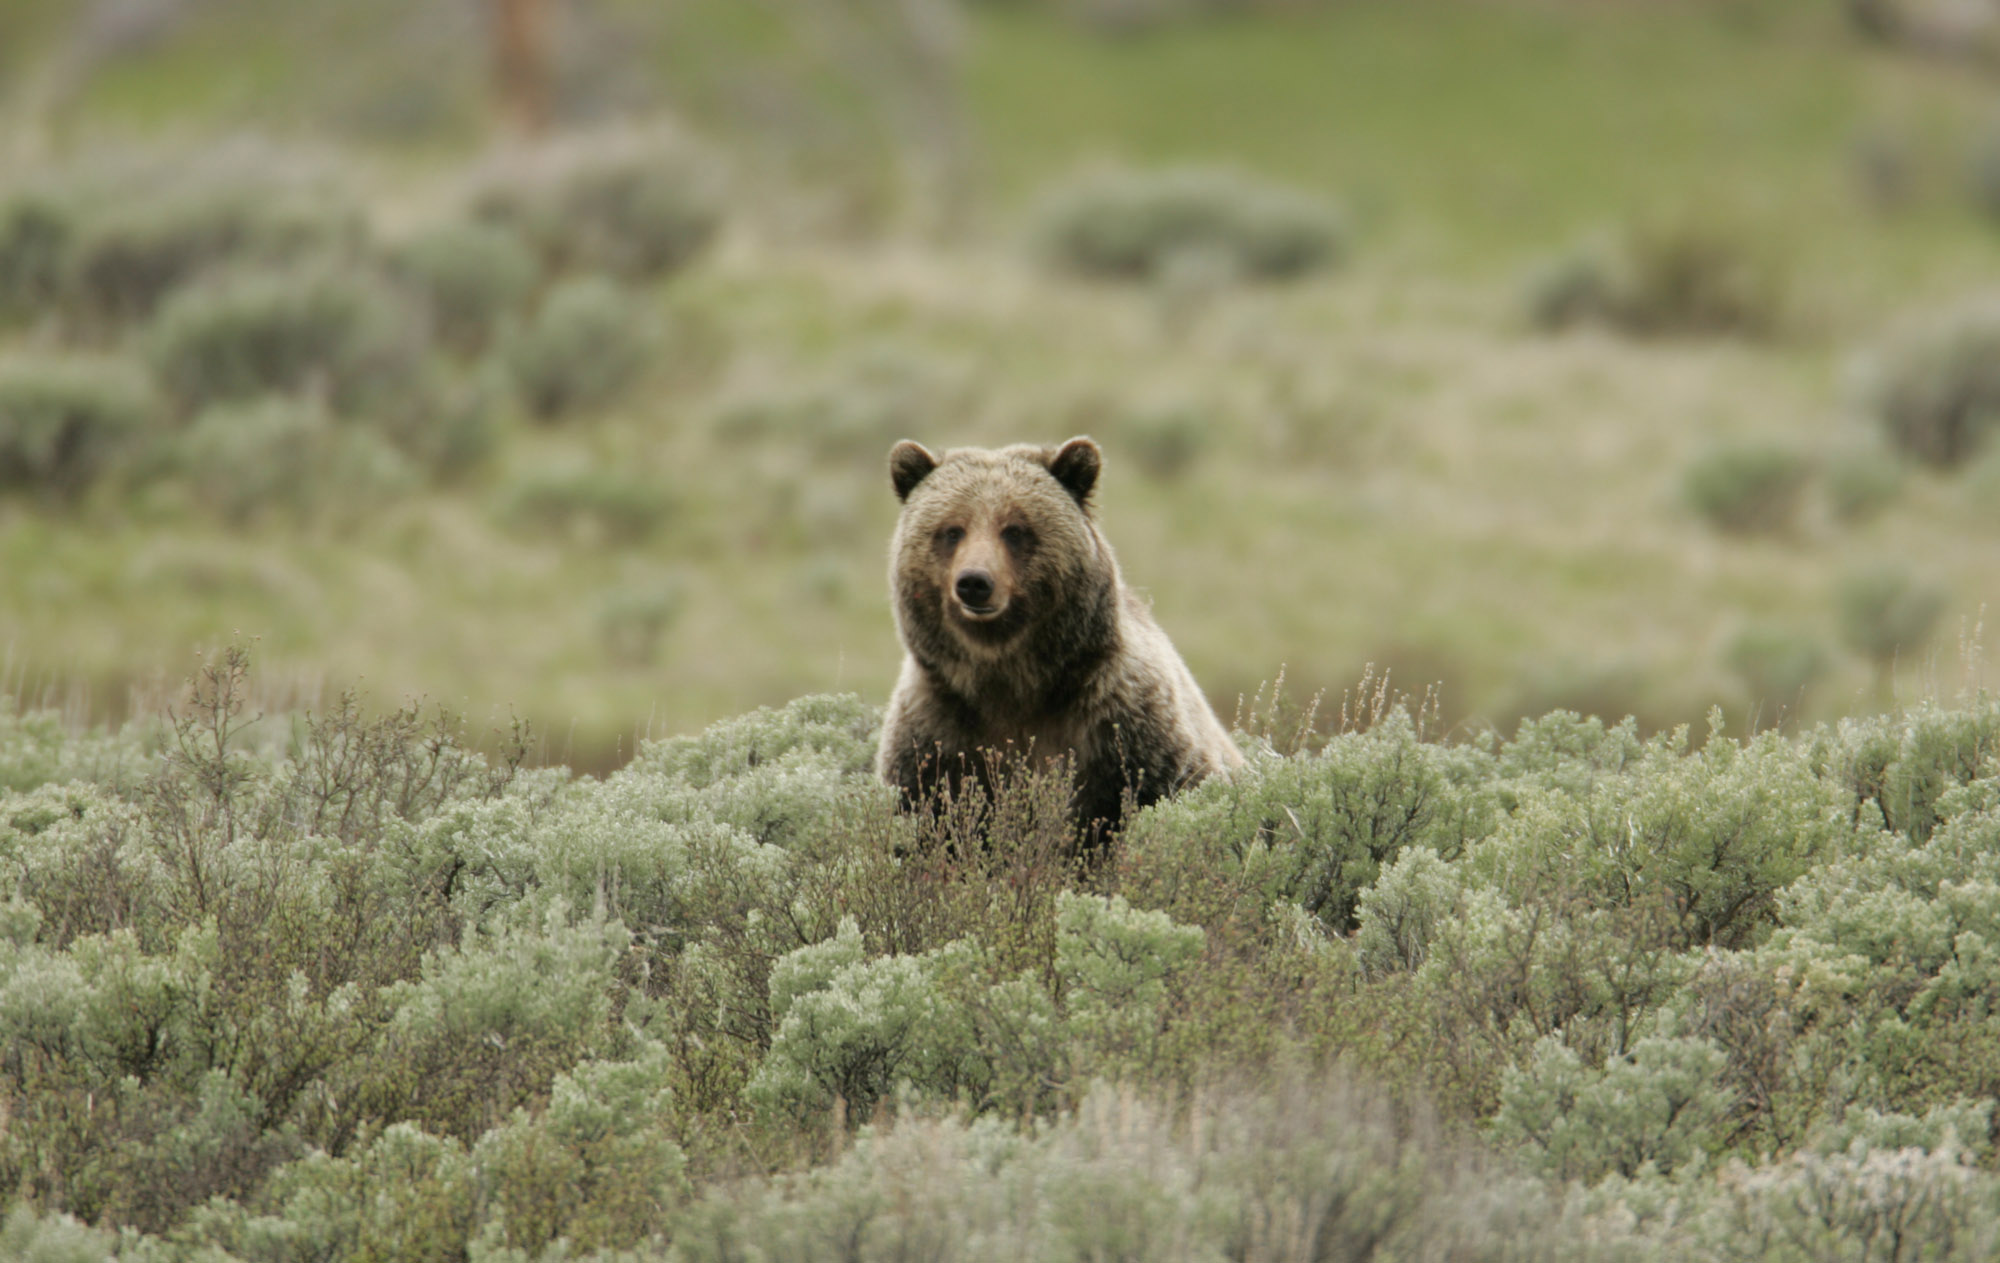 grizzly flats senior dating site 10-30-15 edition - read online for free  mark a long-standing tradition dating back  grizzly flats, california.